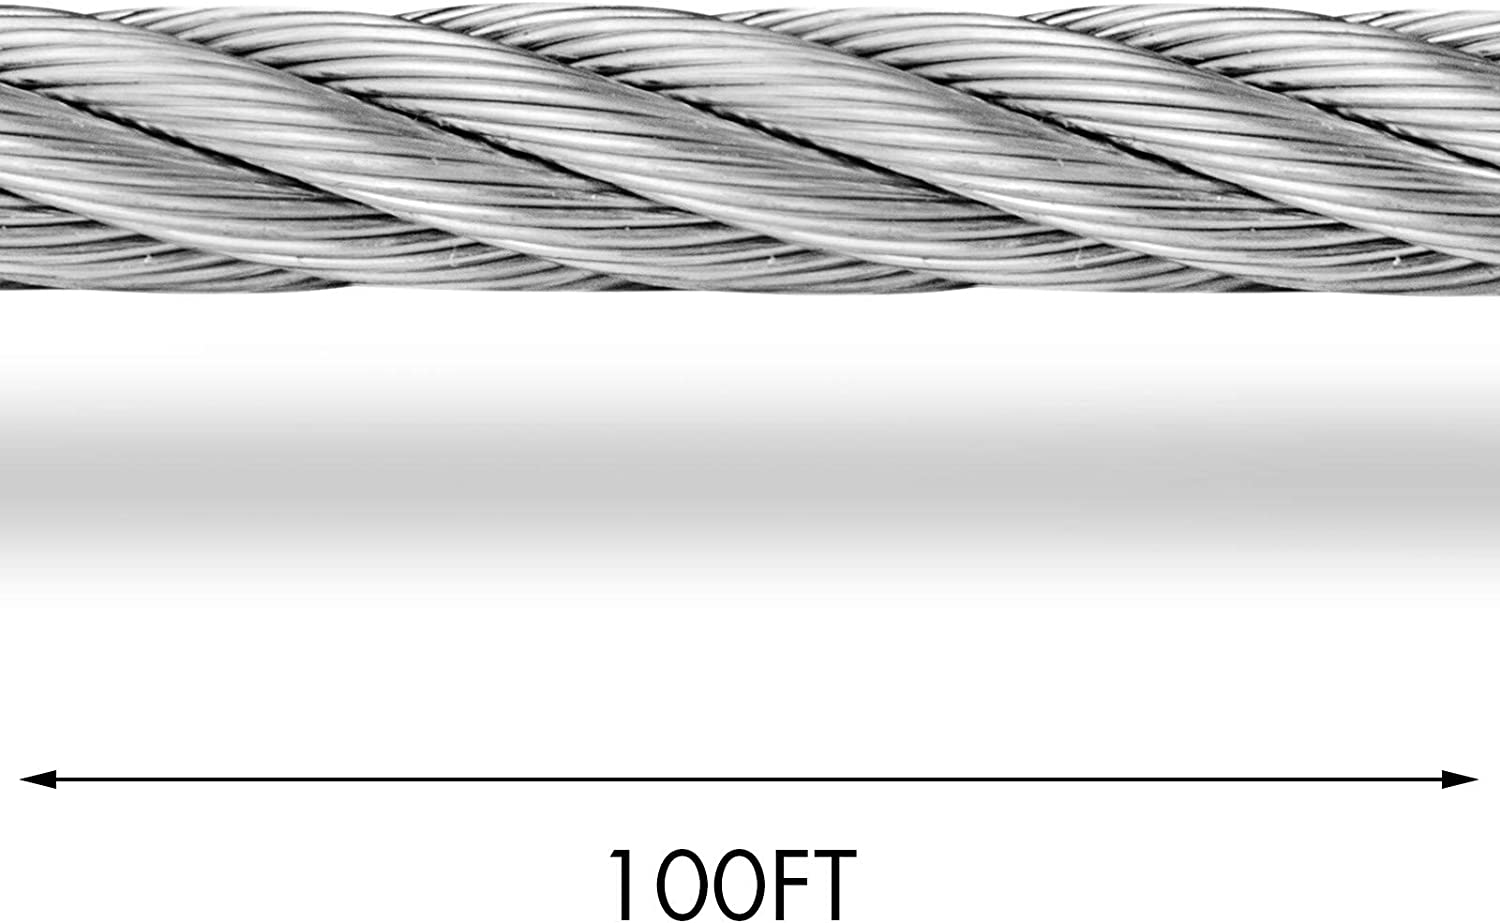 Mophorn 316 Stainless Steel Cable 1//4 in 7 X 19 Steel Wire Rope 100Ft Steel Cable for Railing Decking DIY Balustrade 0.25 in 100FT 7X19 T316